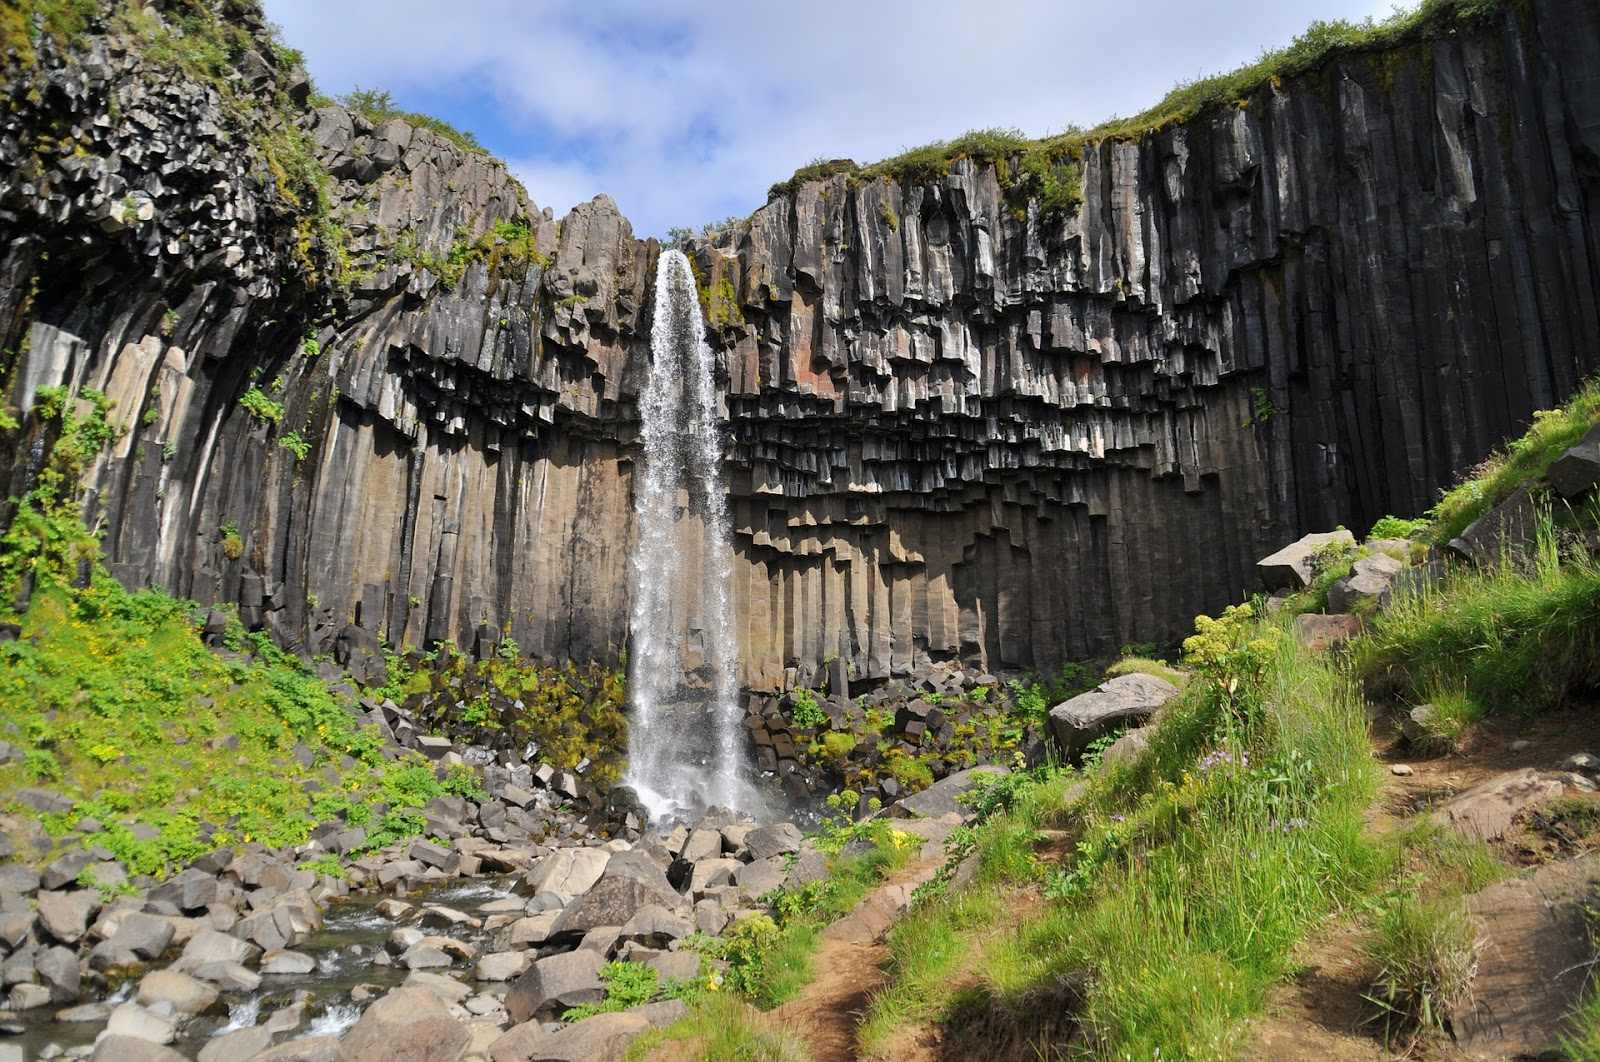 svartifoss waterfall from unique rock formation interesting cliff iceland natural beauty